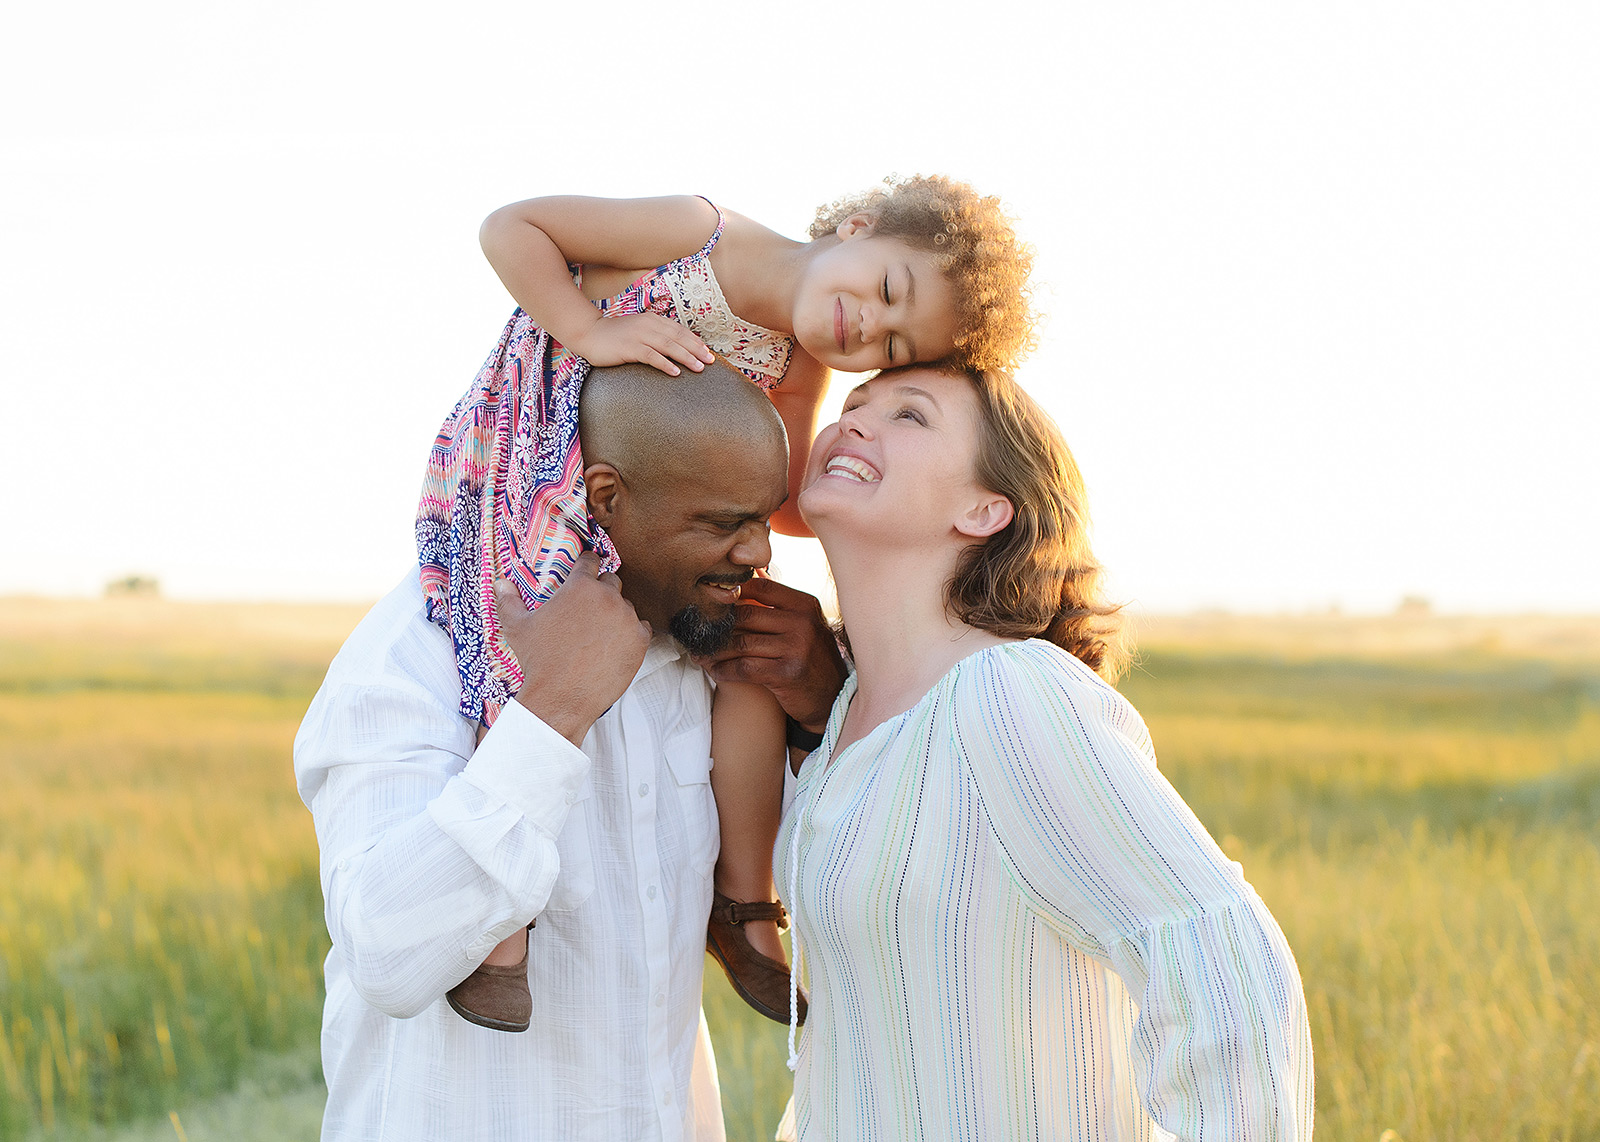 sweet family photo during sunset